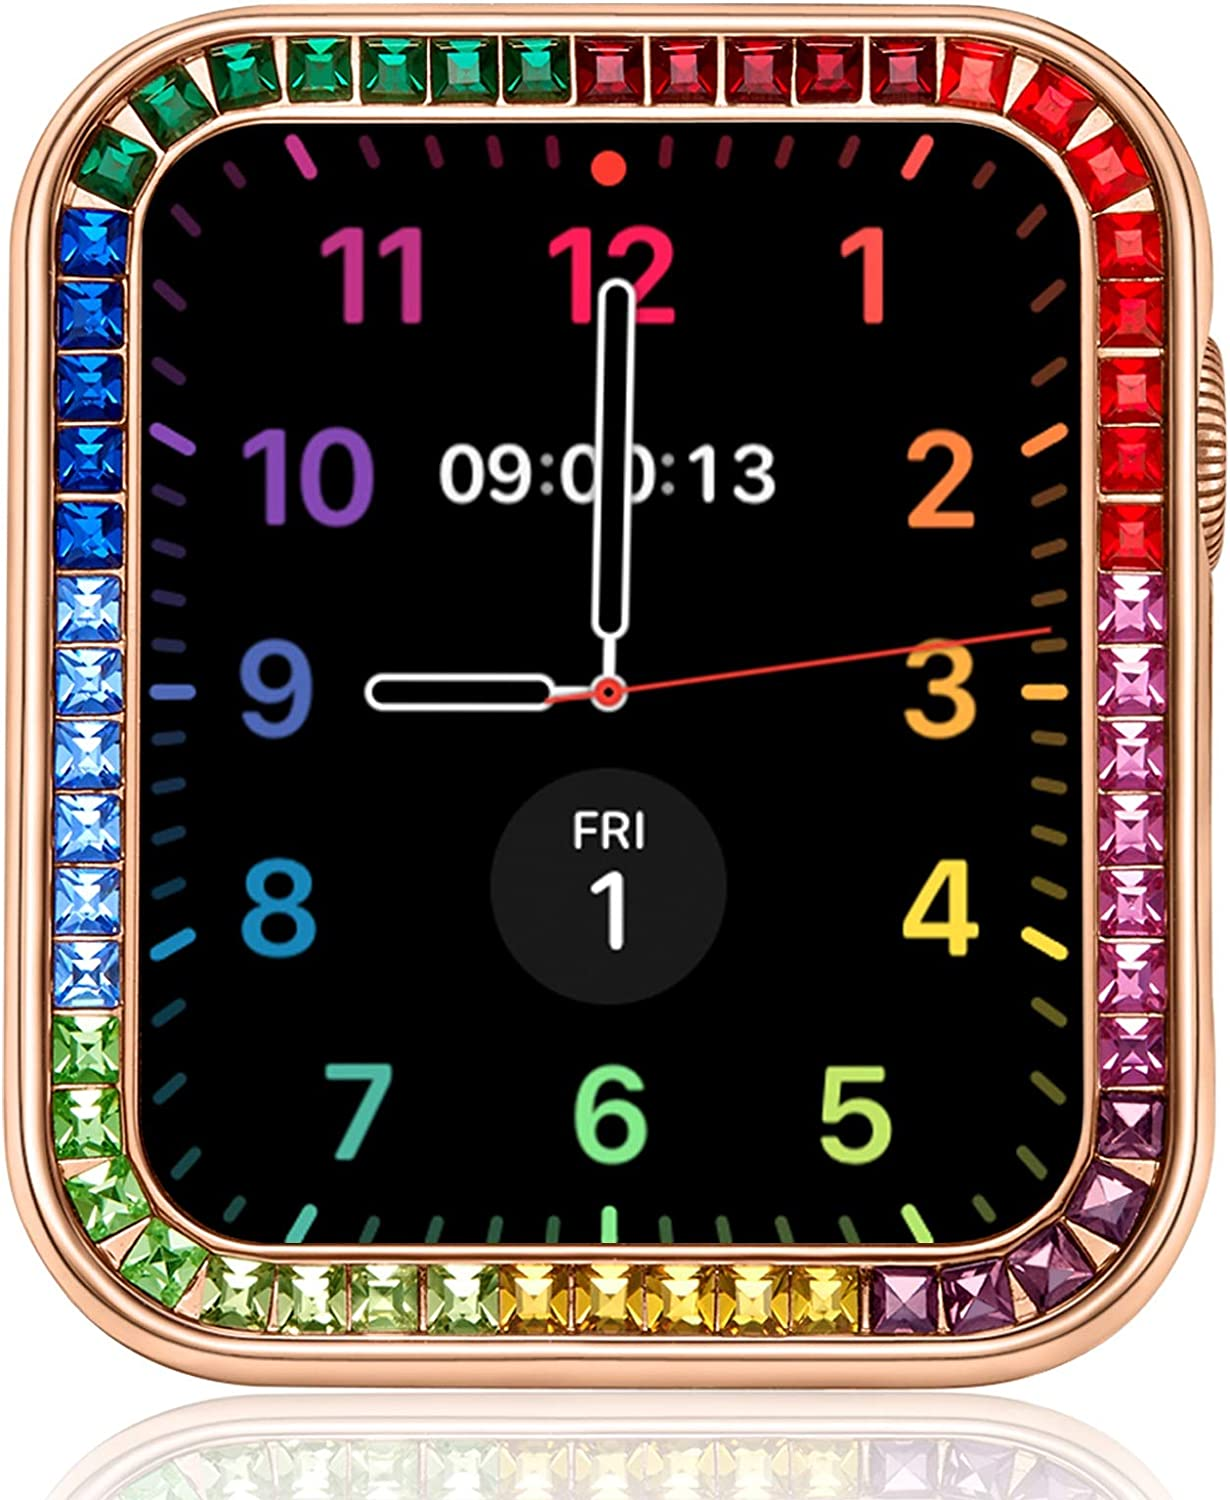 VATI Compatible for Bling Apple Watch Case 42MM Series 3/2, 10-Colored Colorful Square Diamond iWatch Cover Frame with Gift Box for Women Girl Men (Rose Gold)